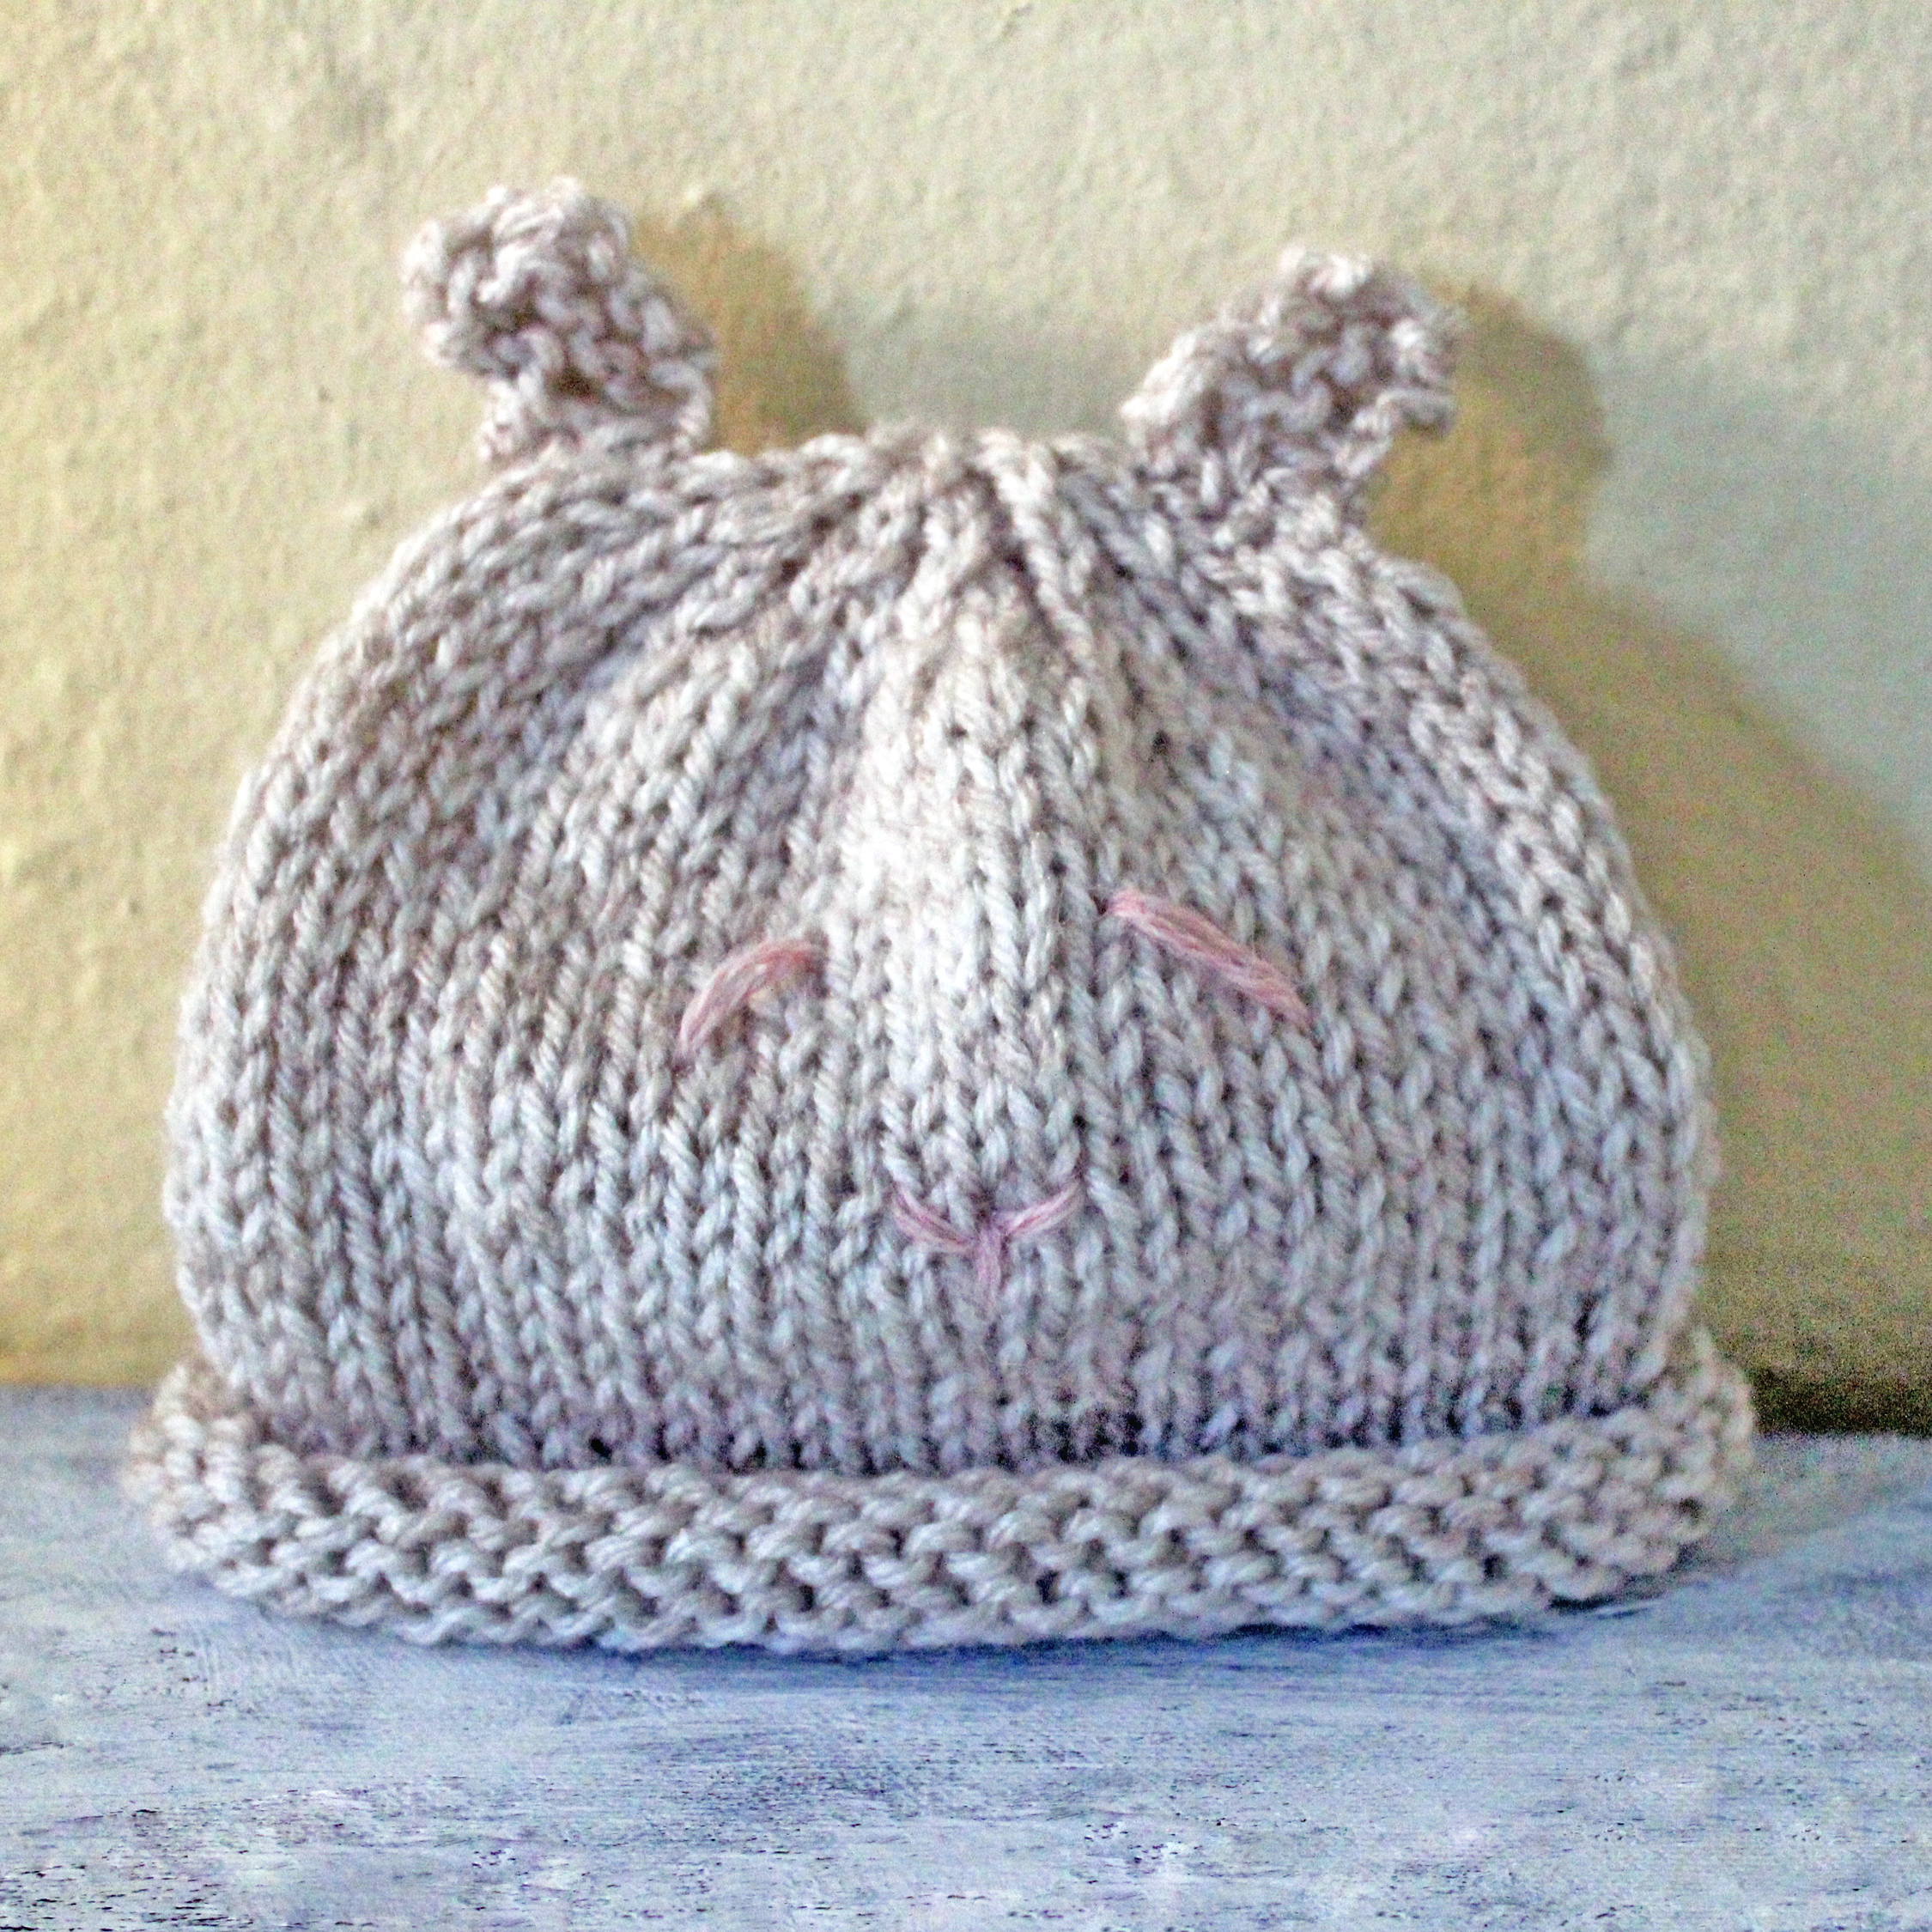 knit-baby-hat